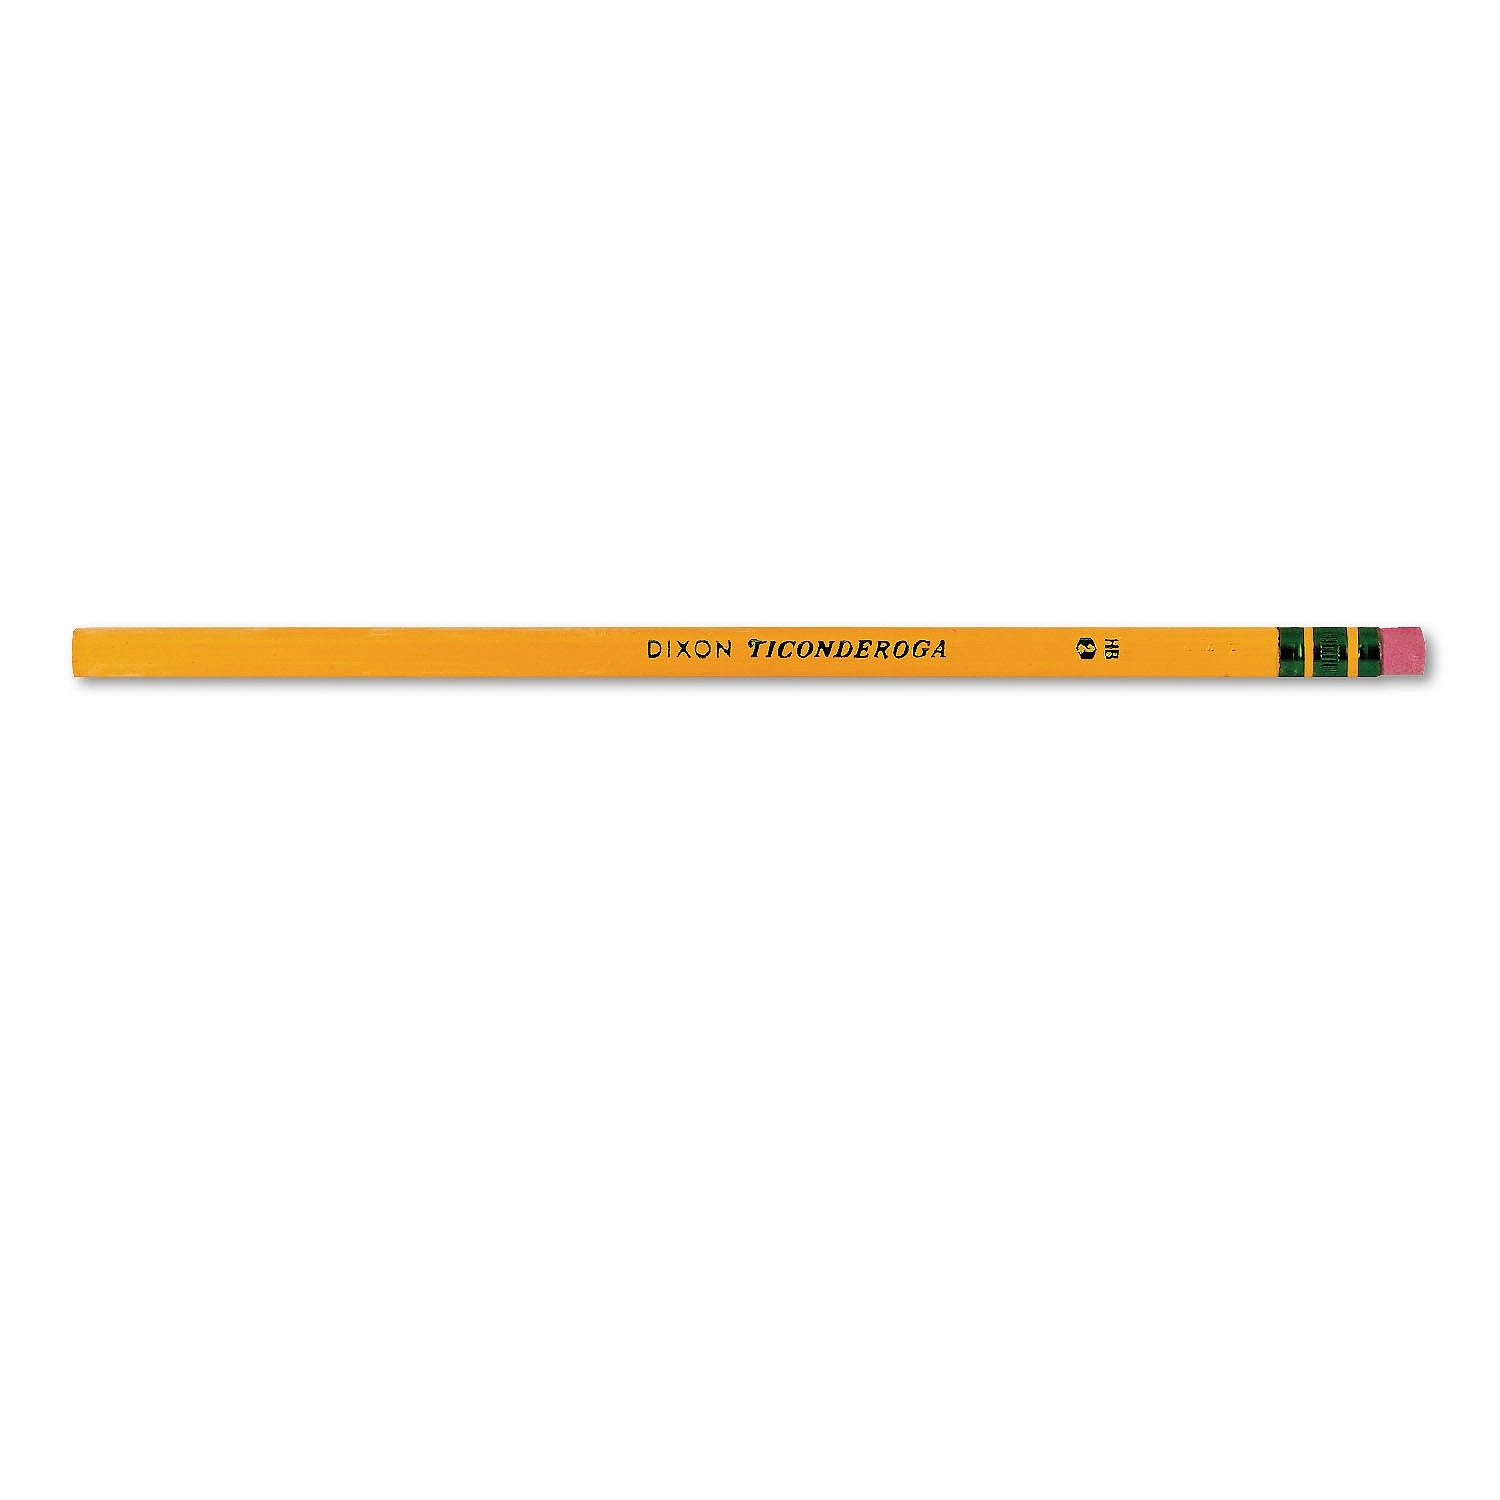 Ticonderoga SLGJHJ Woodcase Pencil, HB #2, Yellow Barrel, 96/Pack 4 Pack by Ticonderoga (Image #4)